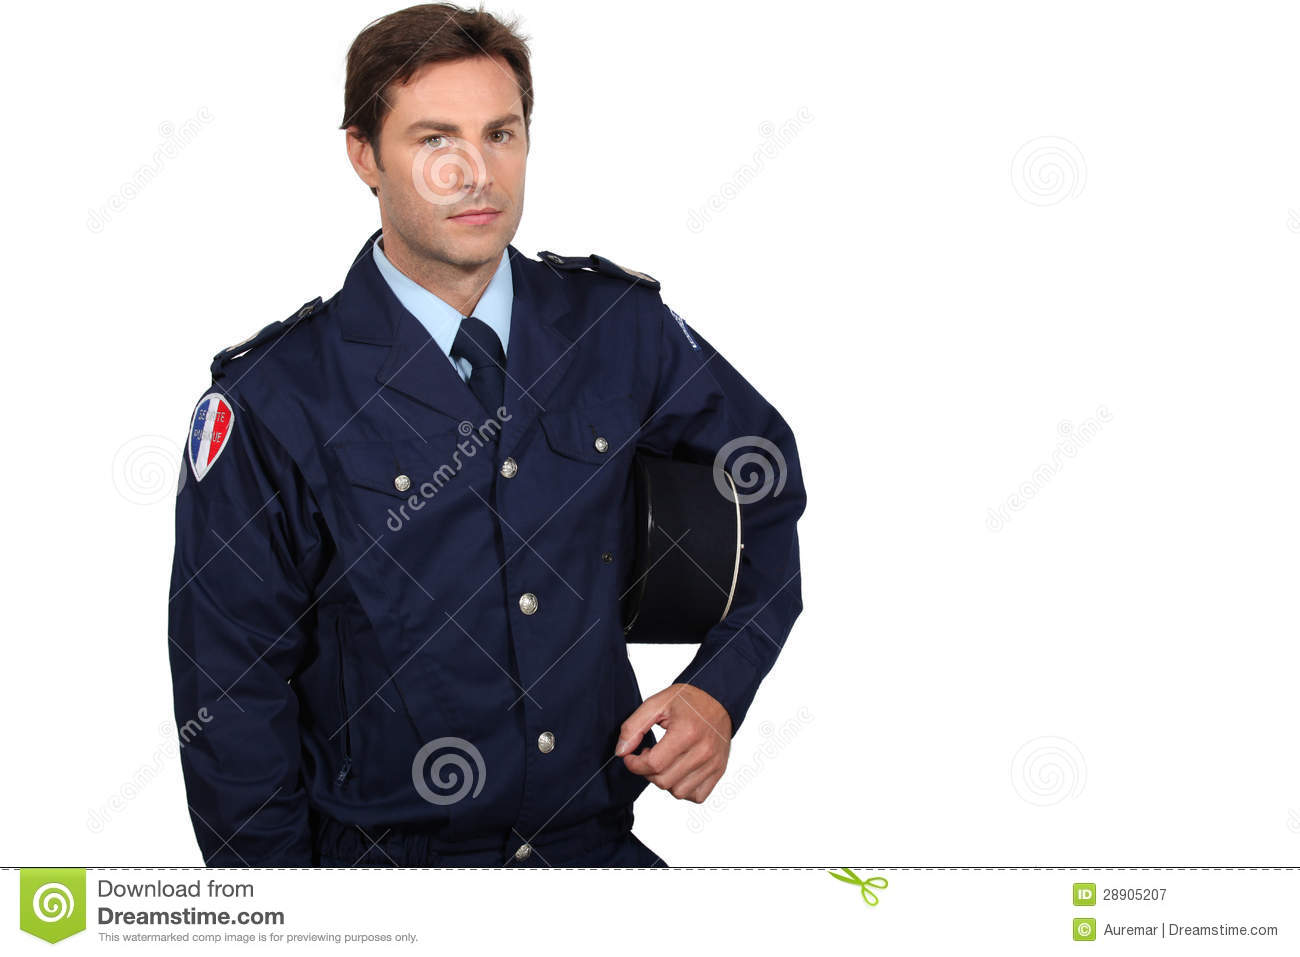 French Policeman Royalty Free Stock Photography   Image  28905207